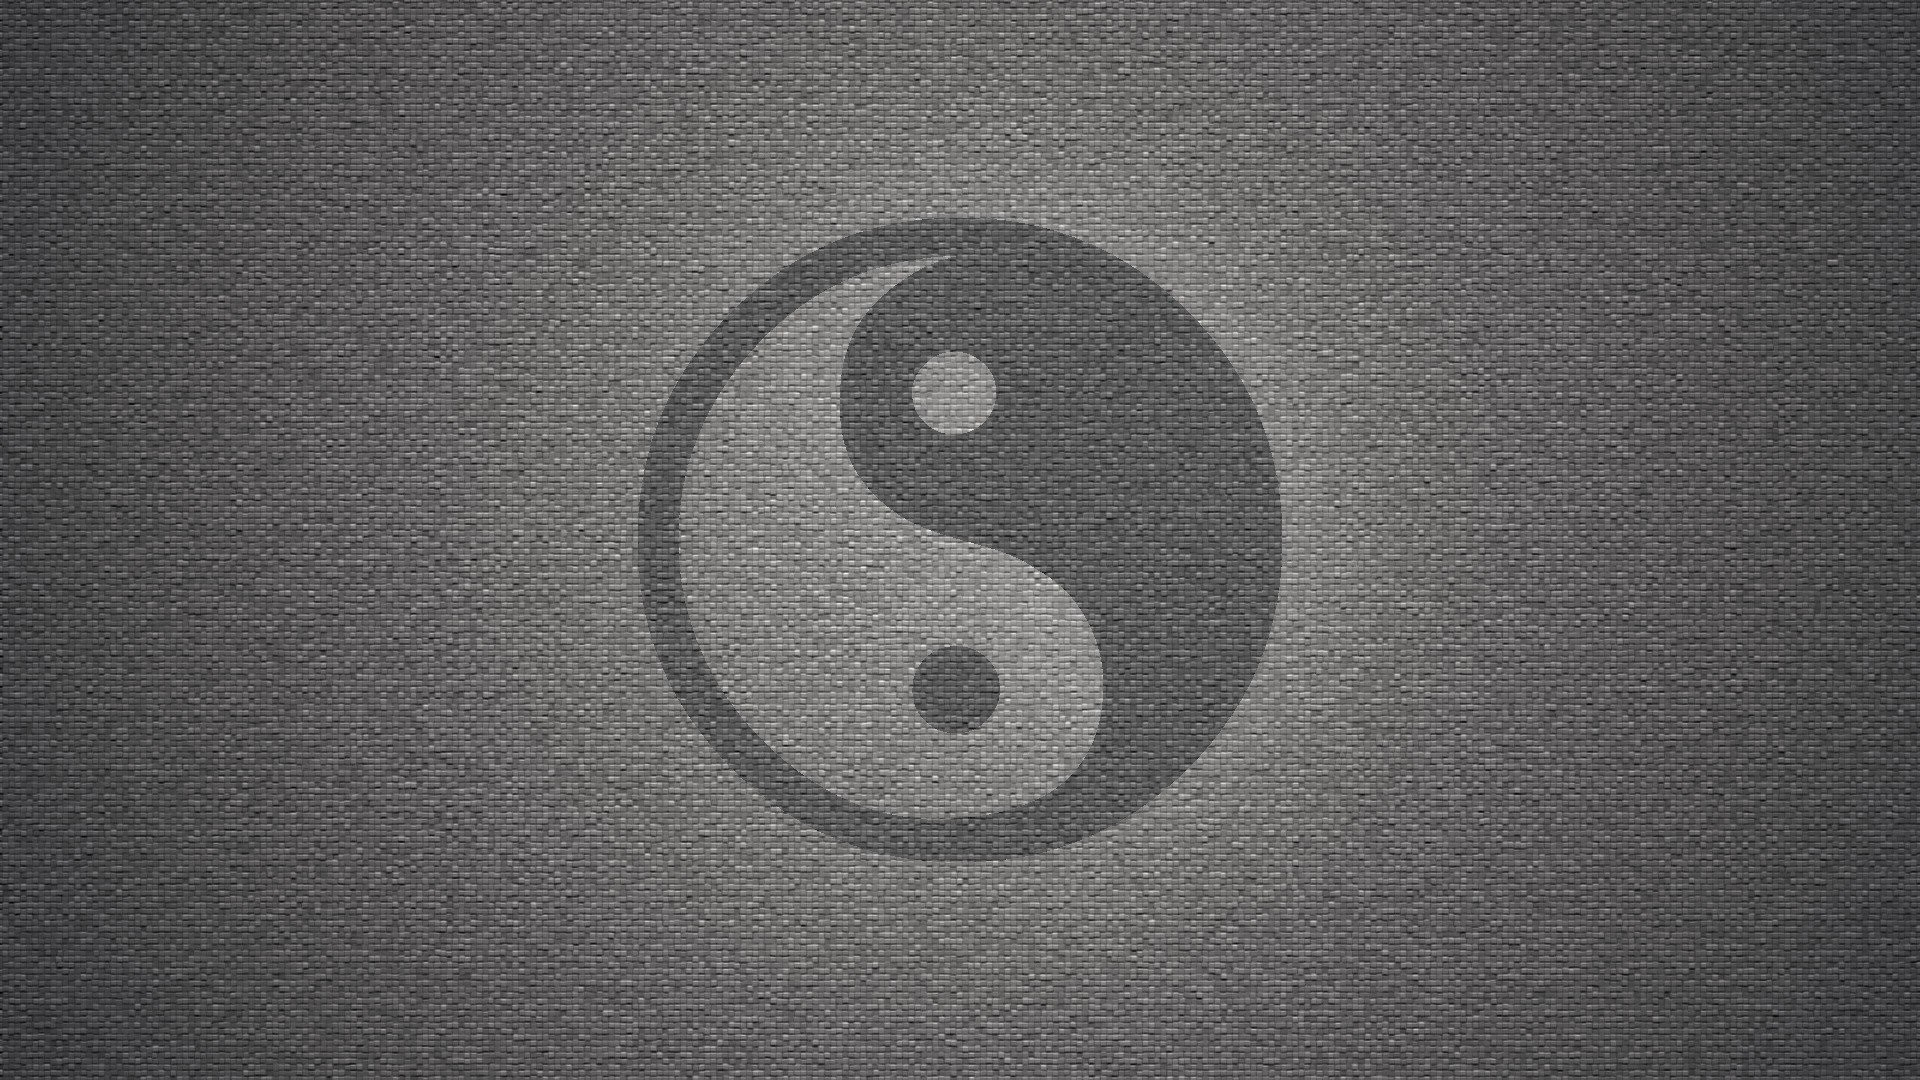 1920x1080 wall yin yang symbol textures grayscale backgrounds symbols wallpaper